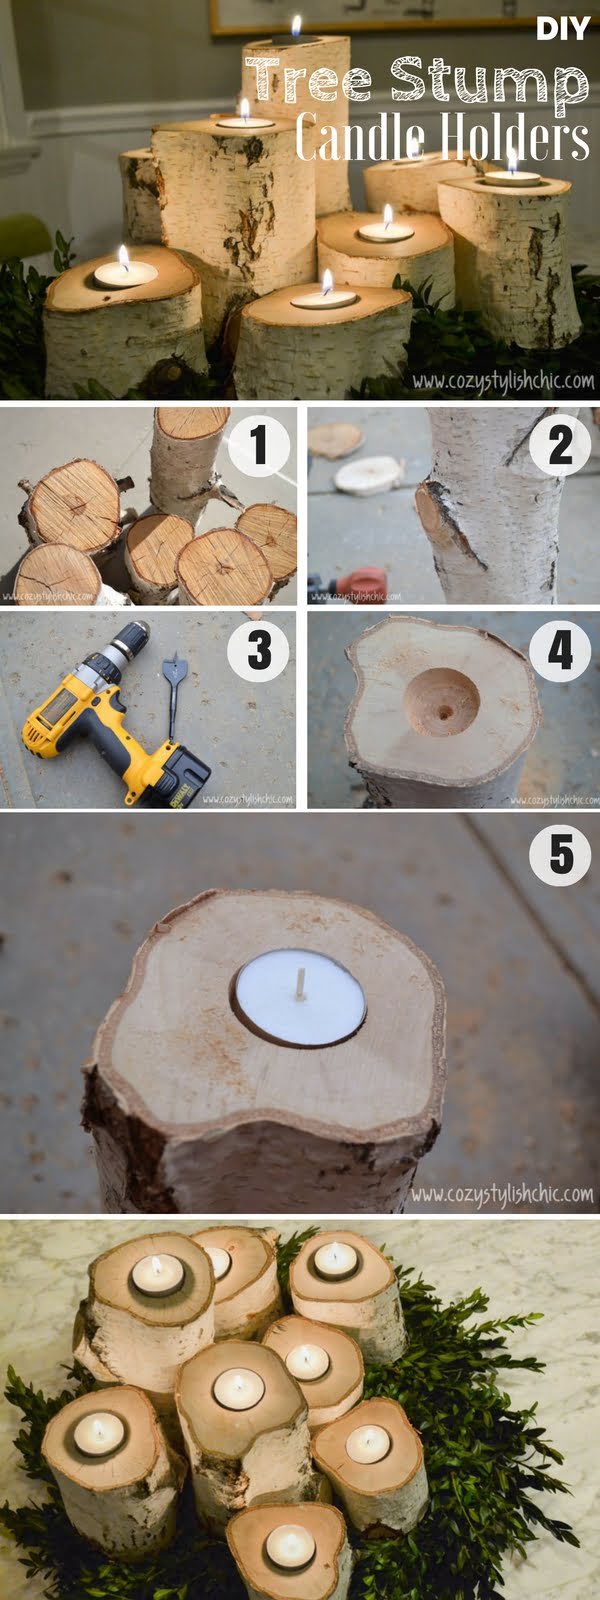 #DIY Tree Stump Candle Holders